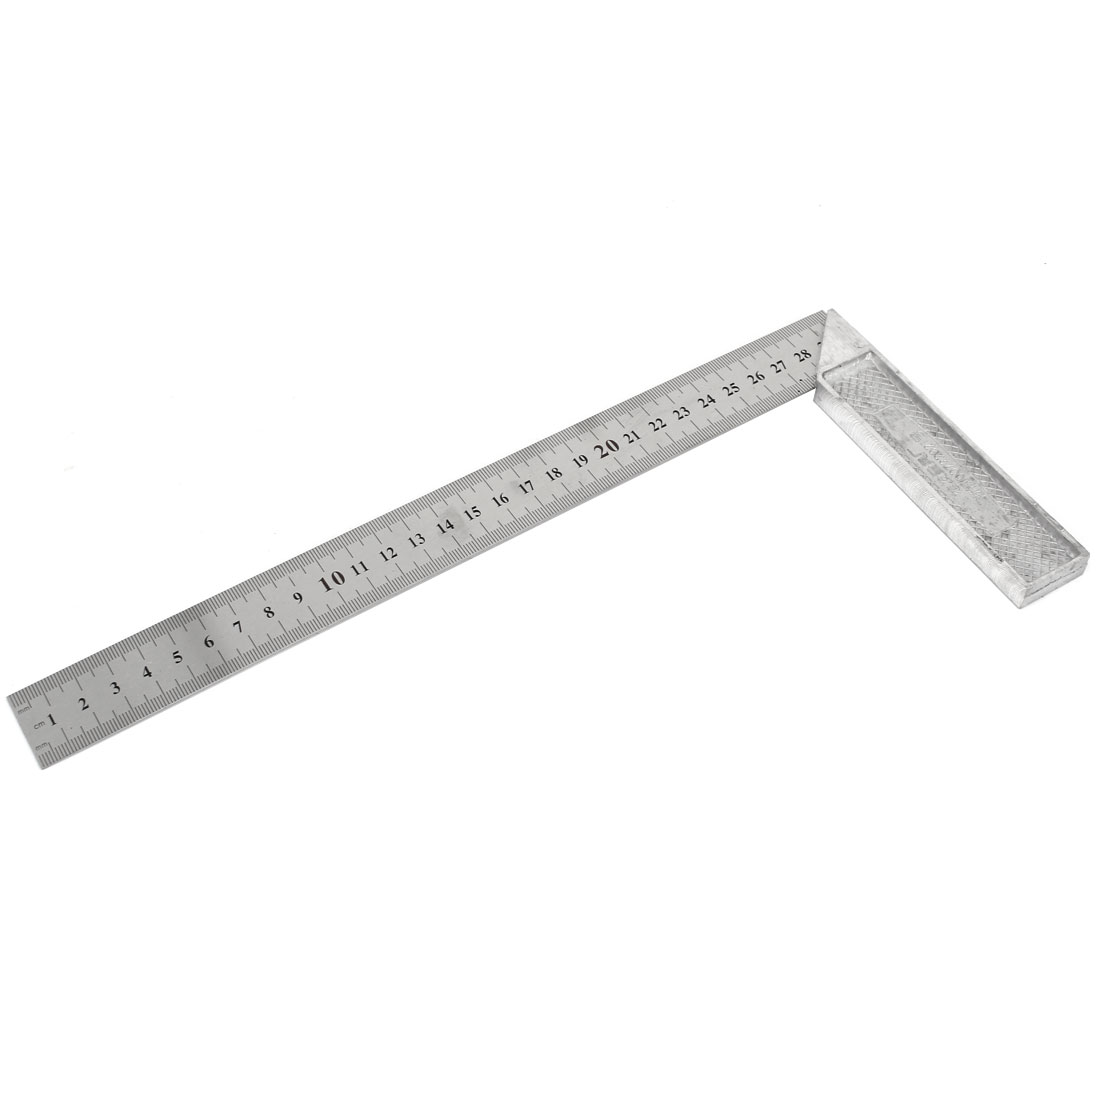 30cm 90 Degree L Shape Square Ruler Tool Silver Tone